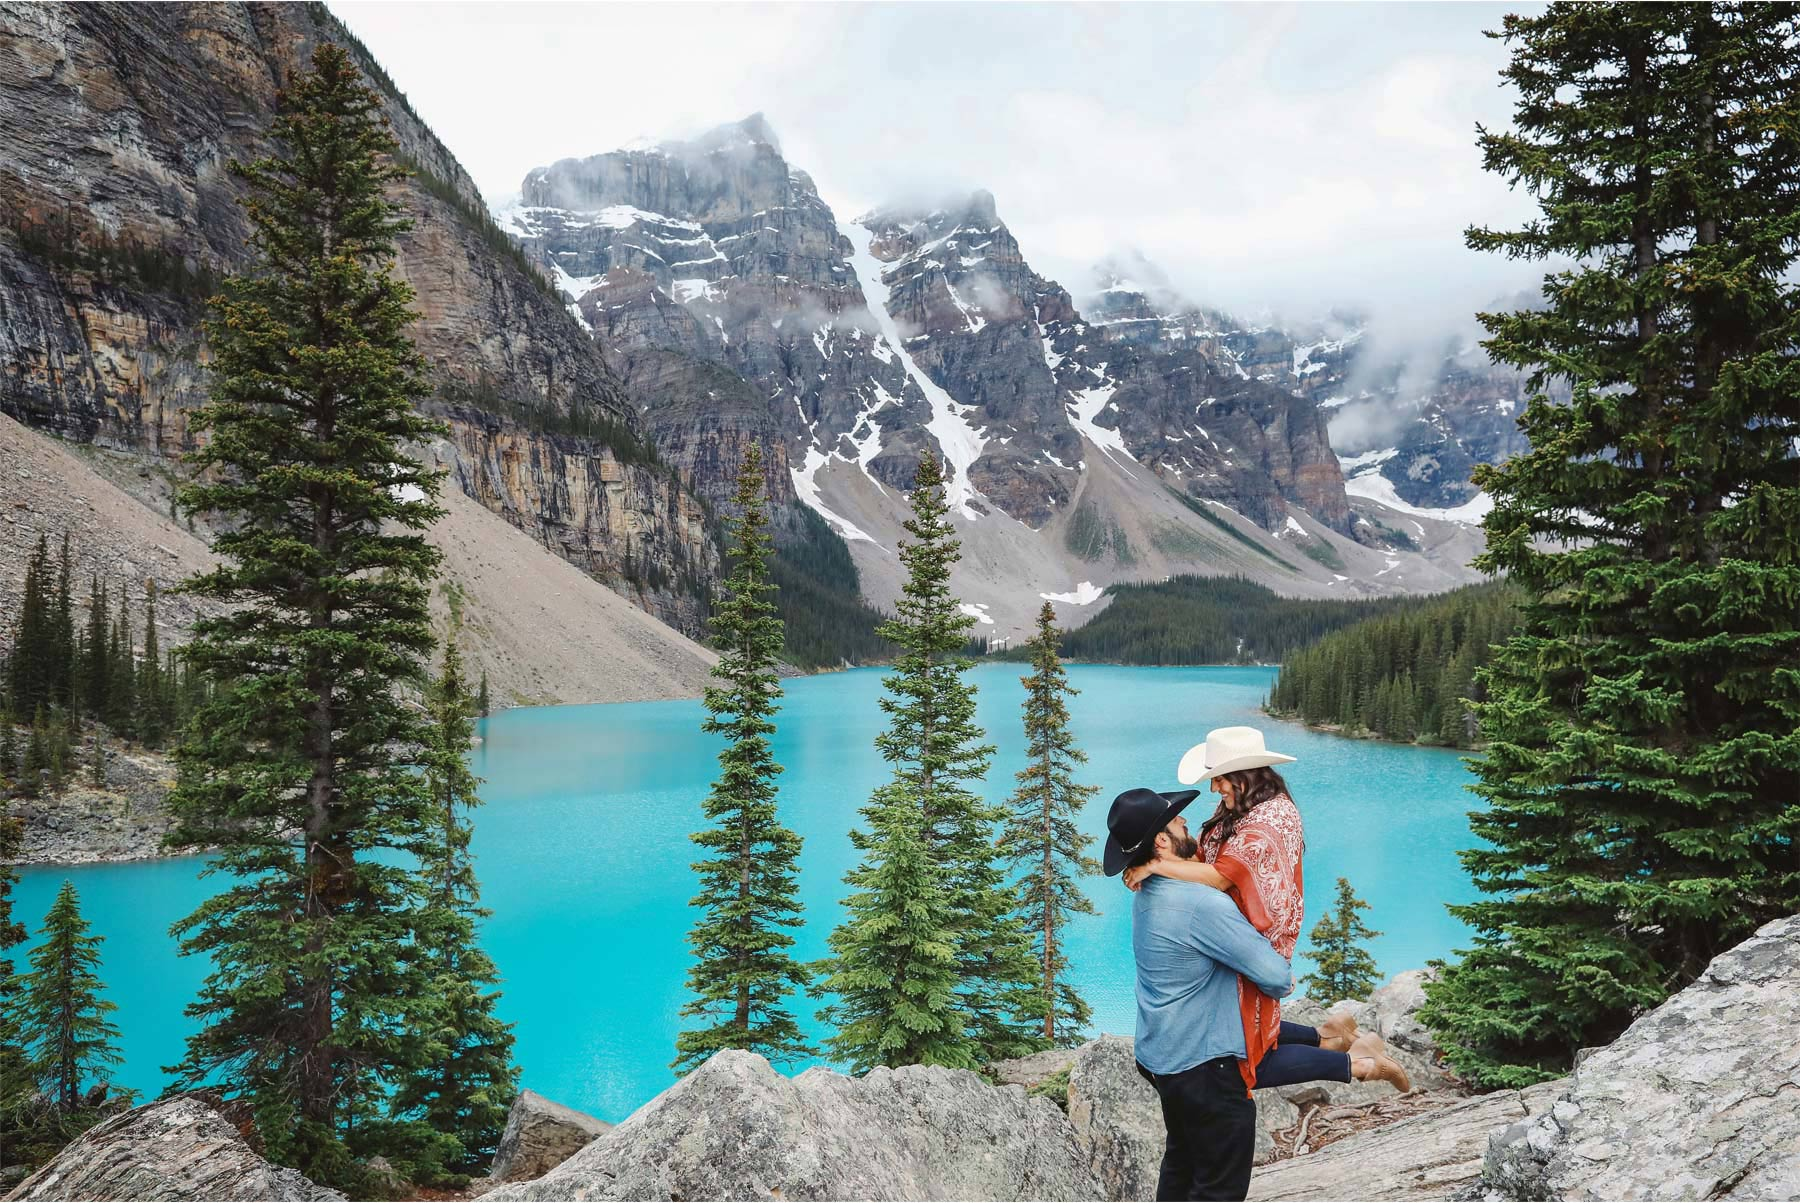 10-Banff-Canada-Engagement-Photography-by-Vick-Photography-Lake-Louise-Mountains-Cowboy-Hat-Lizz-and-Brady.jpg